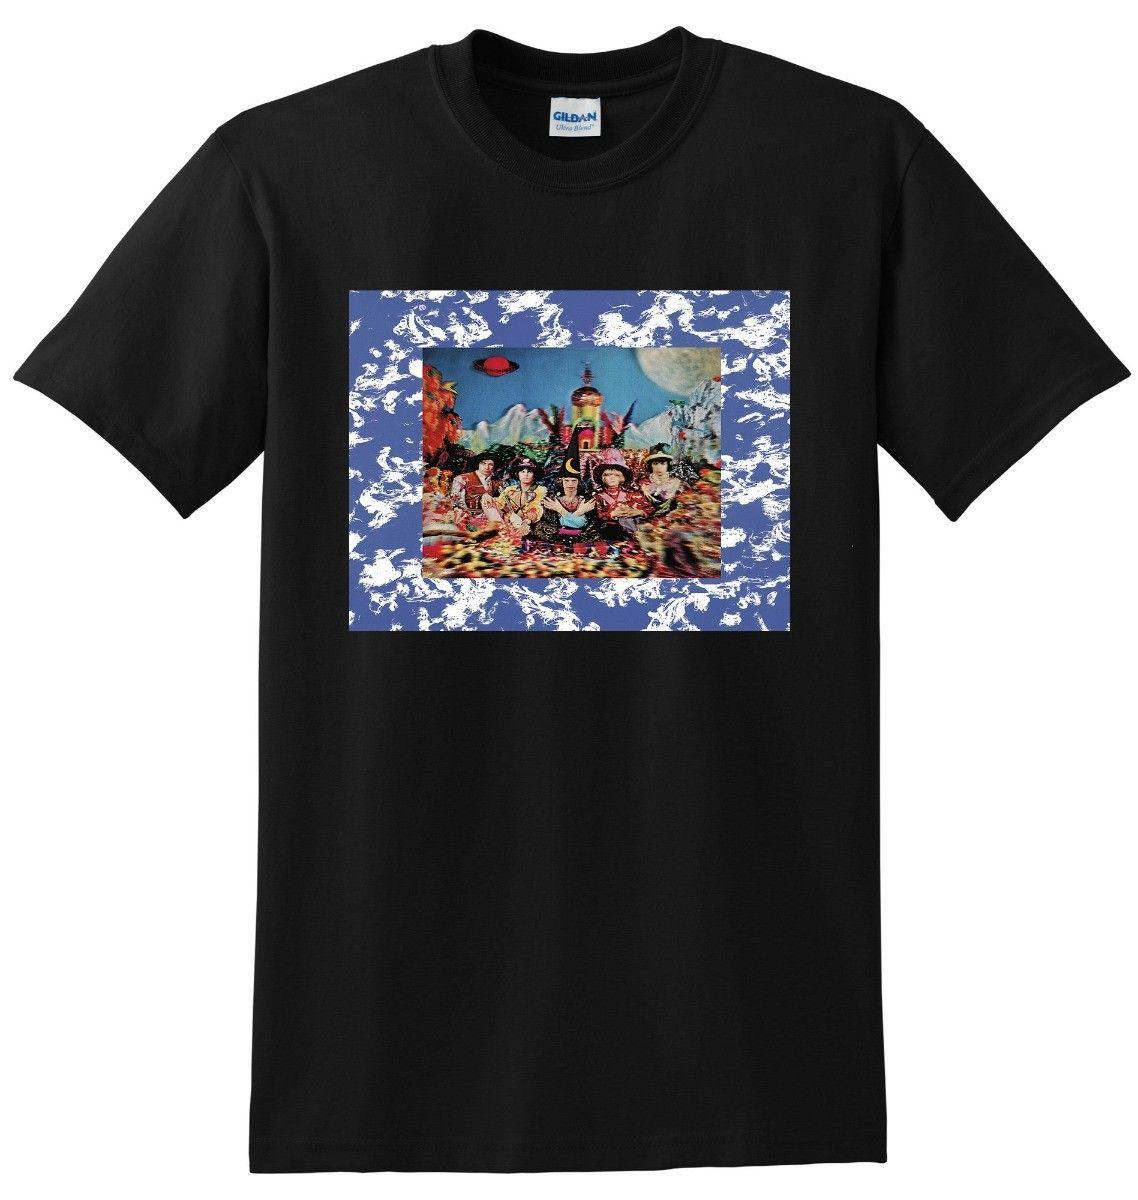 531d070d90c THE ROLLING STONES T SHIRT Their Satanic Majesties Request SMALL MEDIUM L  Or XLALICE IN CHAINS TRI CELL Shirts And T Shirts Buy Cool T Shirts From ...